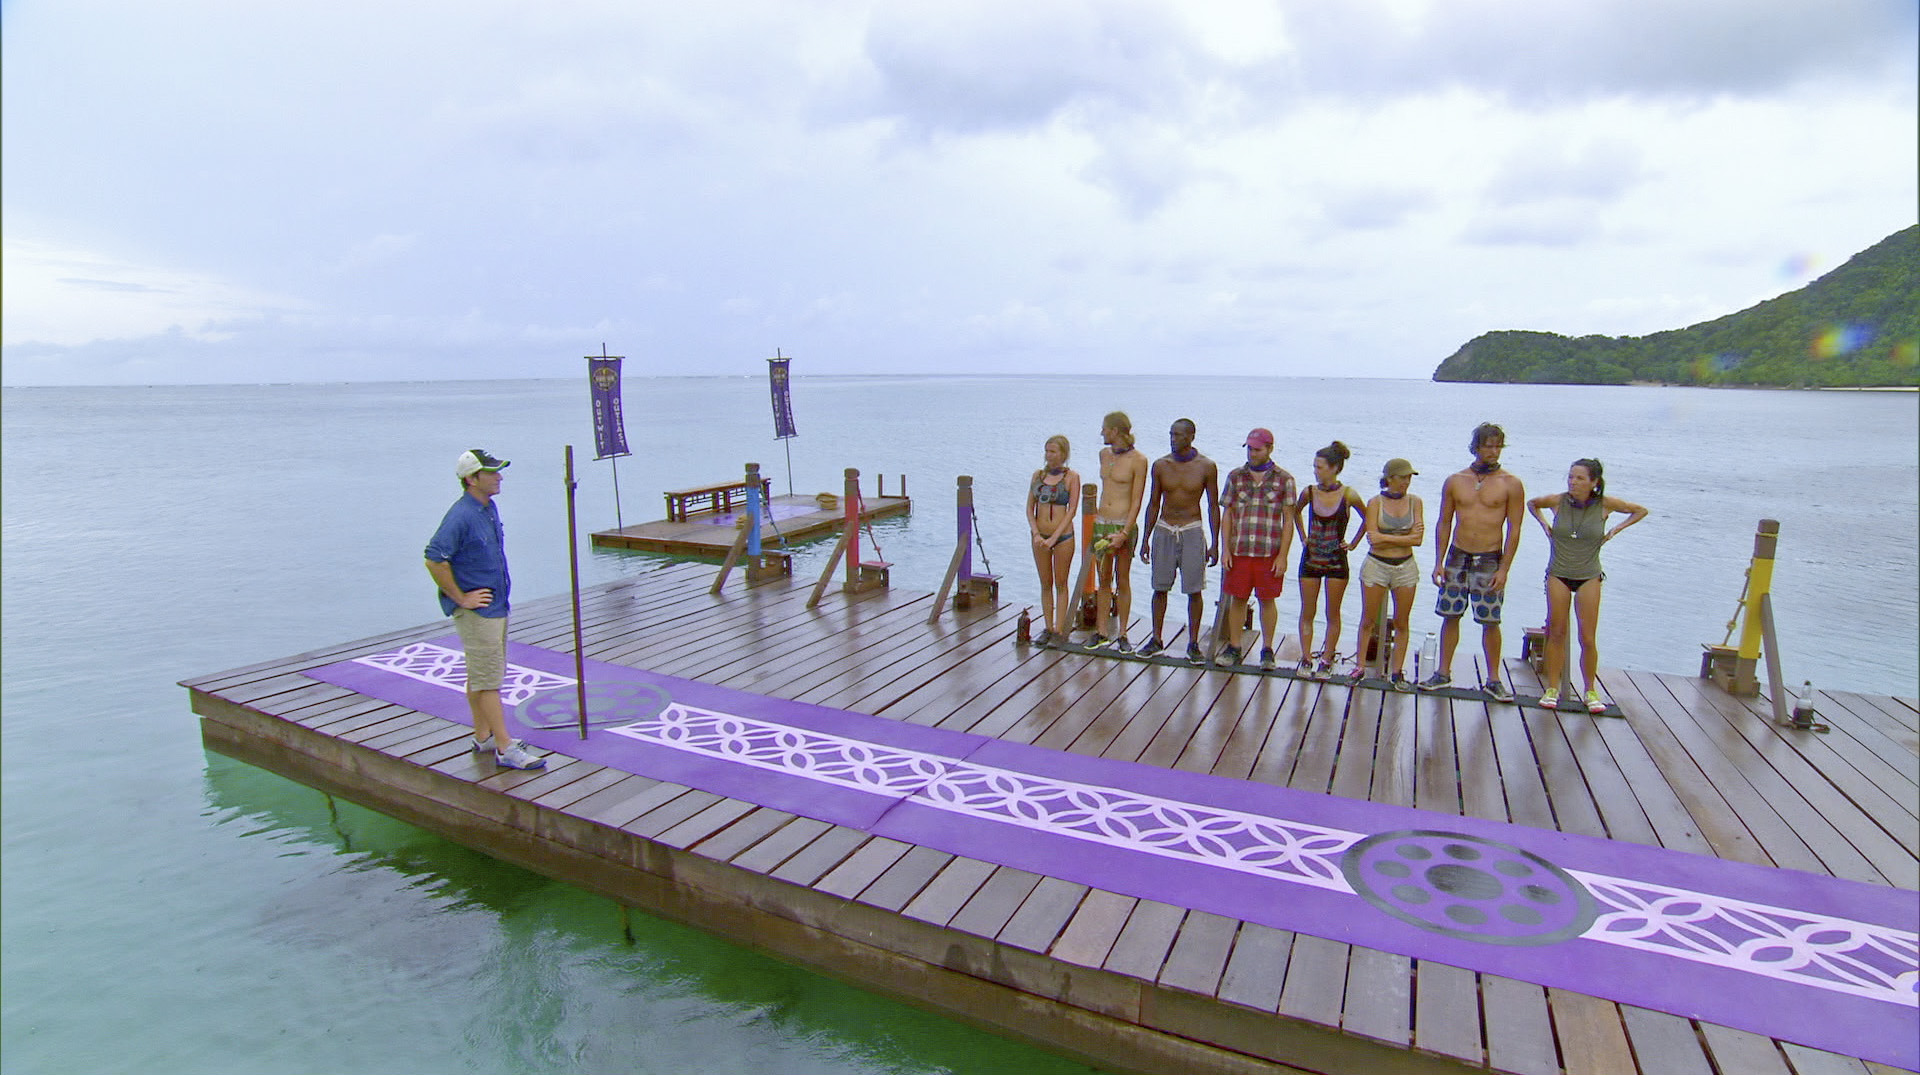 Getting ready for the challenge in Season 27 Episode 10